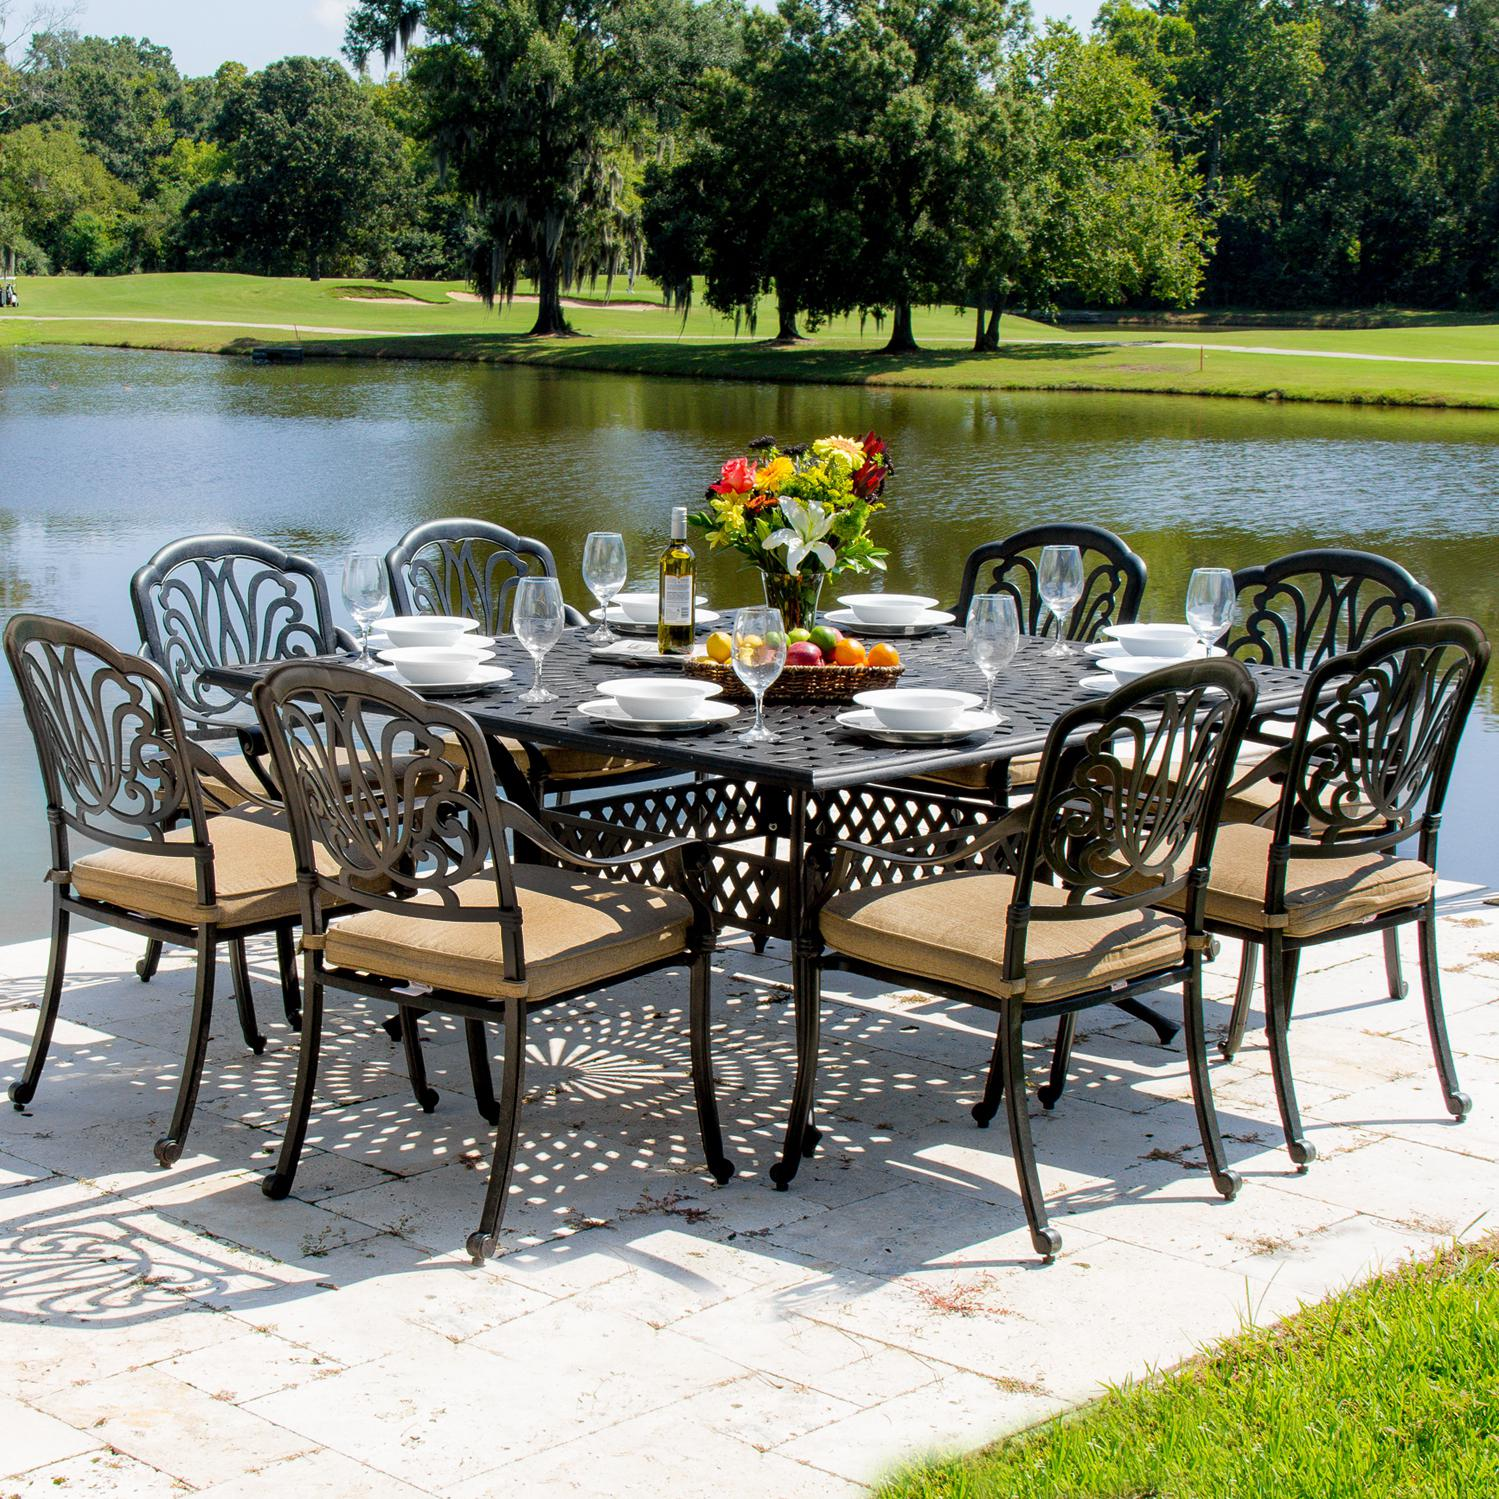 30 model patio dining sets on clearance. Black Bedroom Furniture Sets. Home Design Ideas